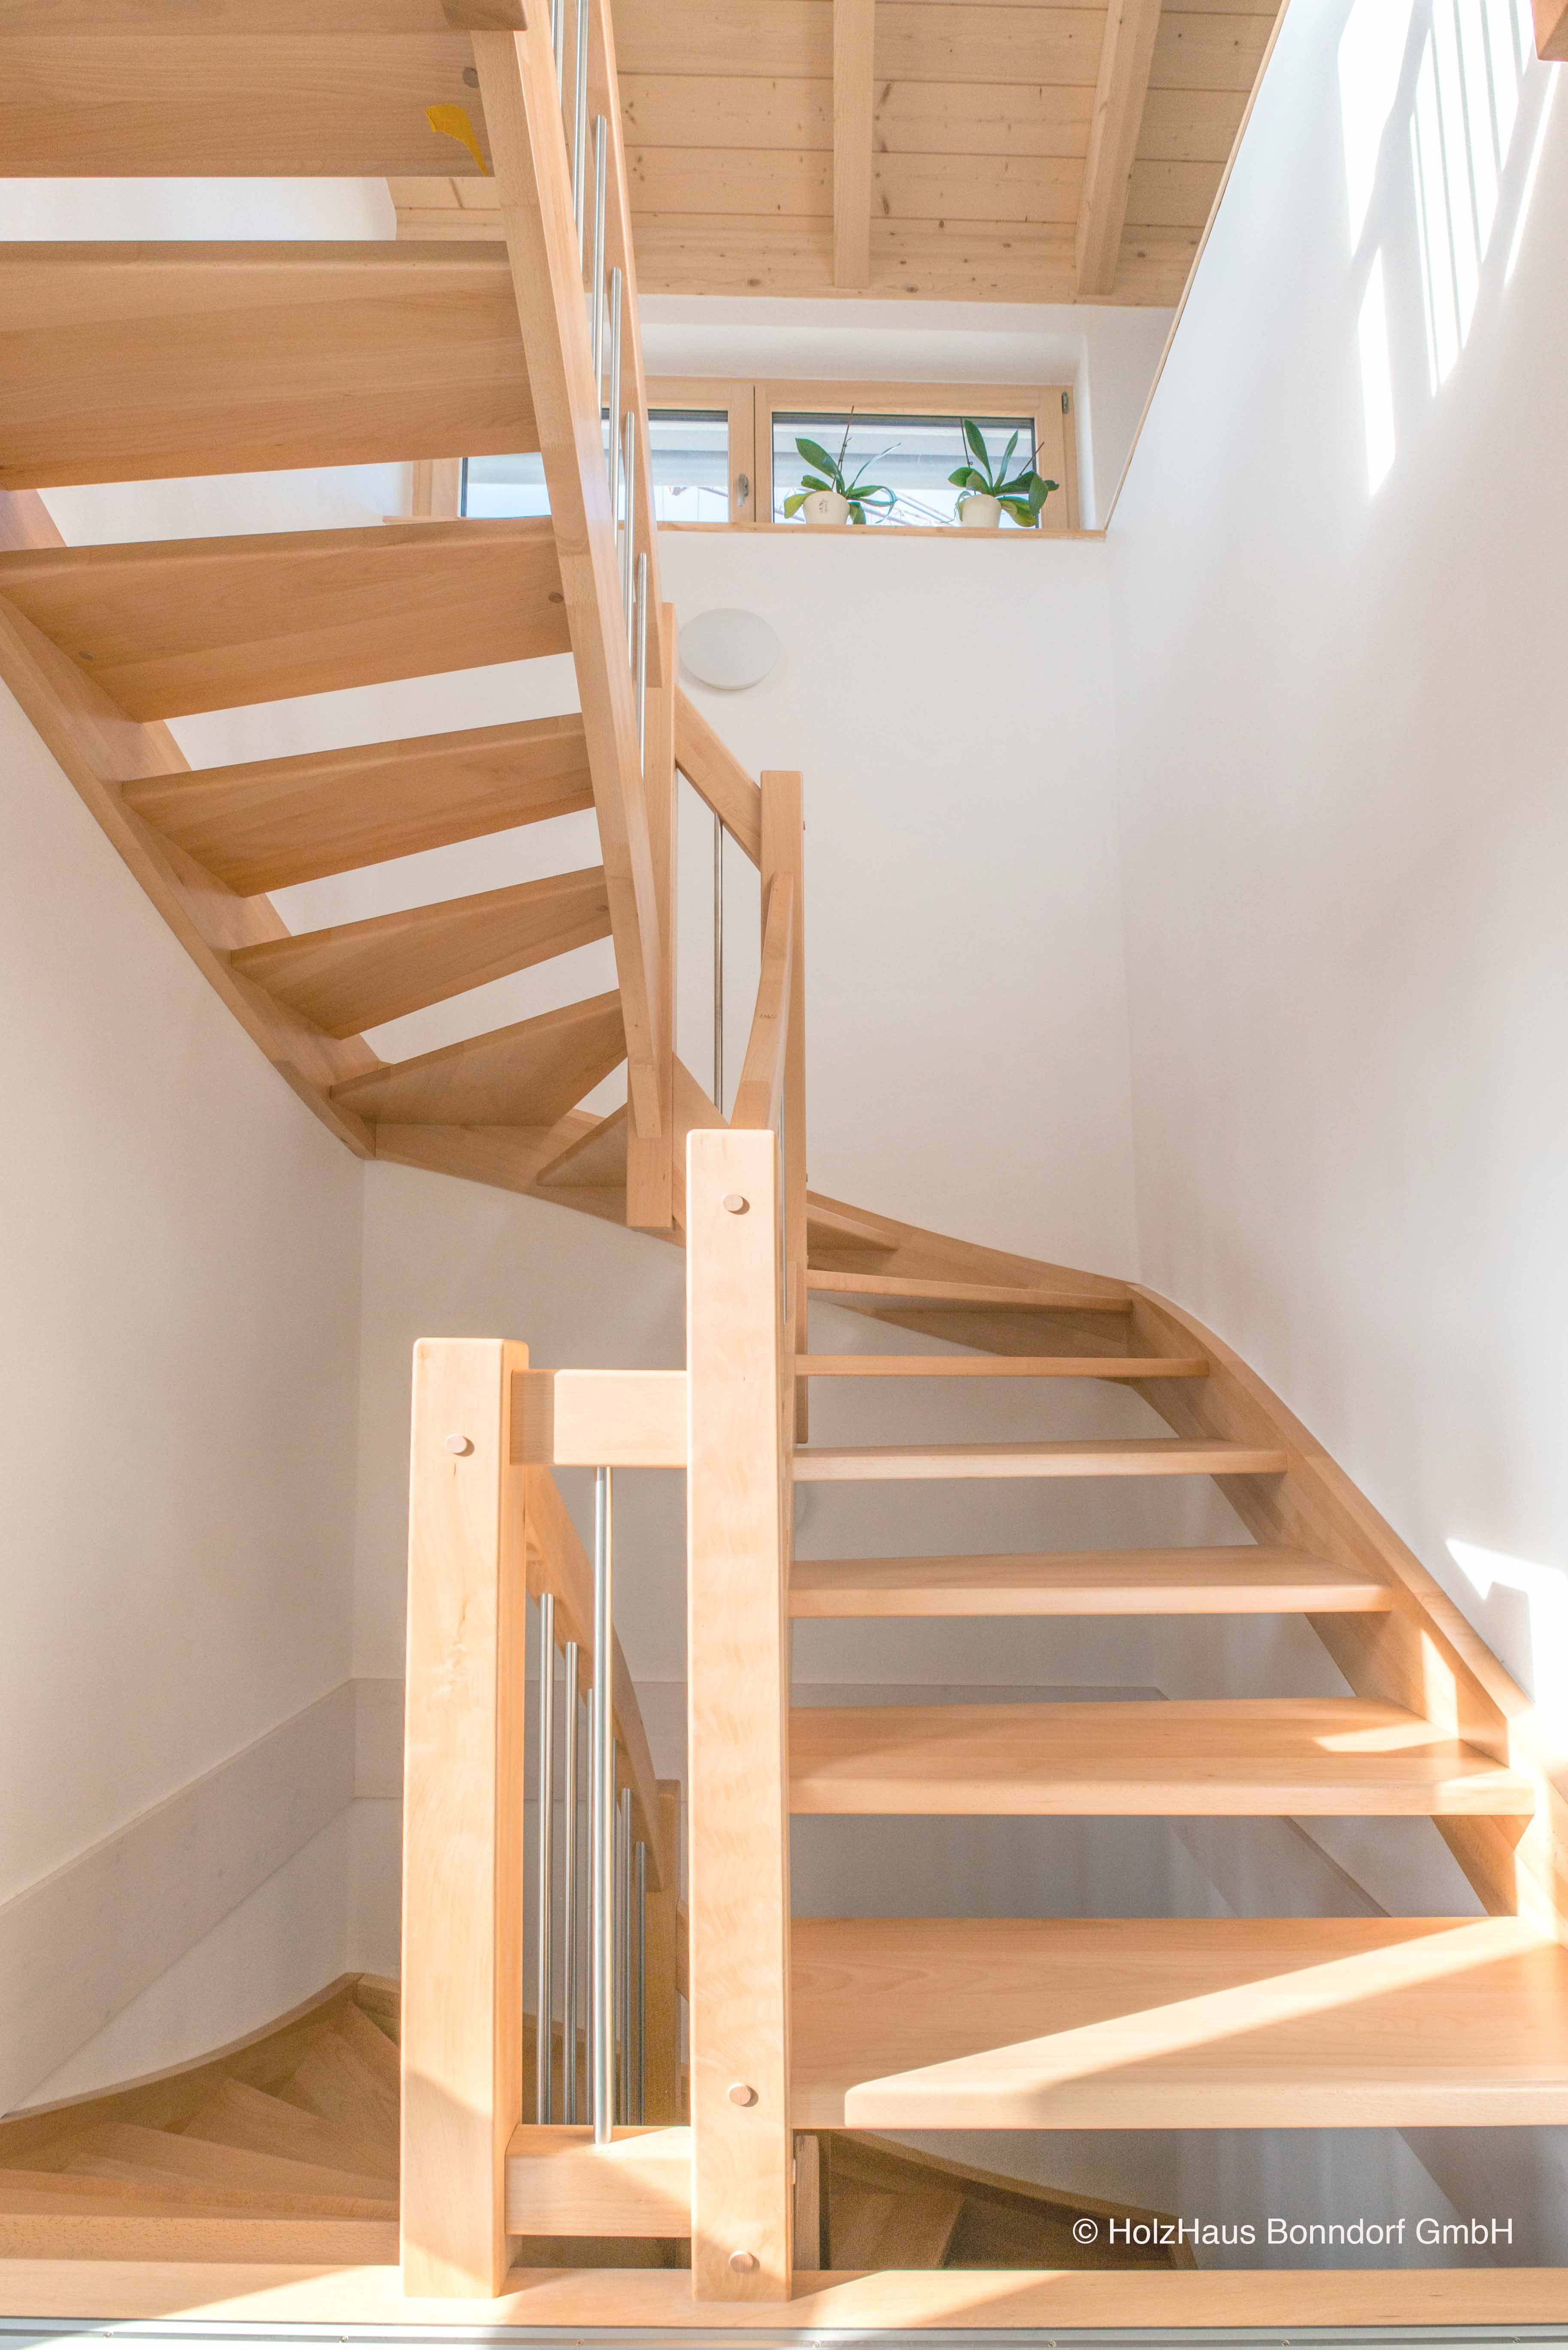 Stairs wooden staircases book staircase ideas architectural materials also best stair way images in rh pinterest